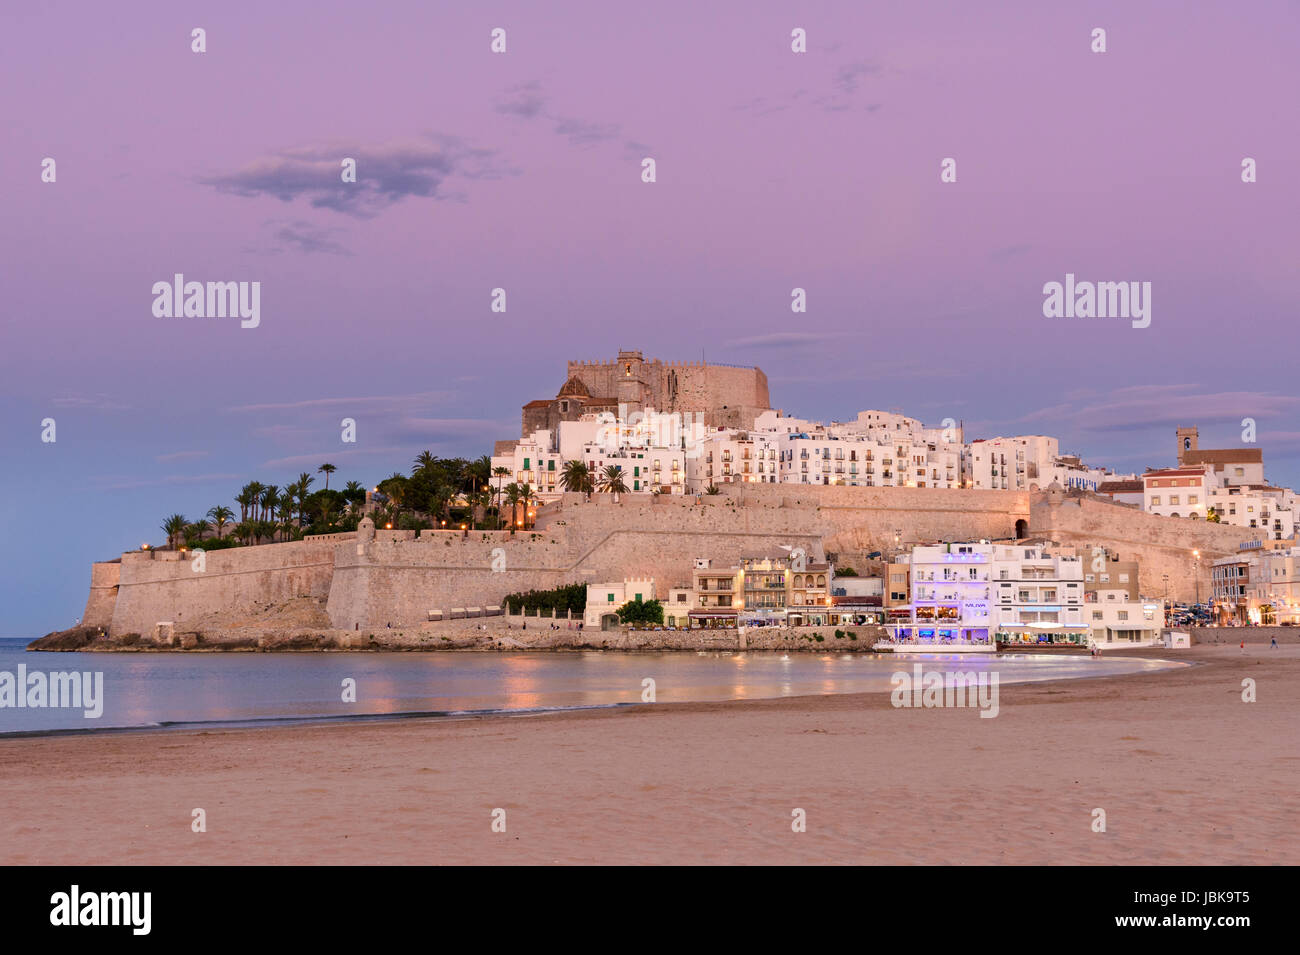 Sunset over Papa Luna Castle and old town overlooking the beach of Playa Norte, Peniscola, Castellon, Spain - Stock Image